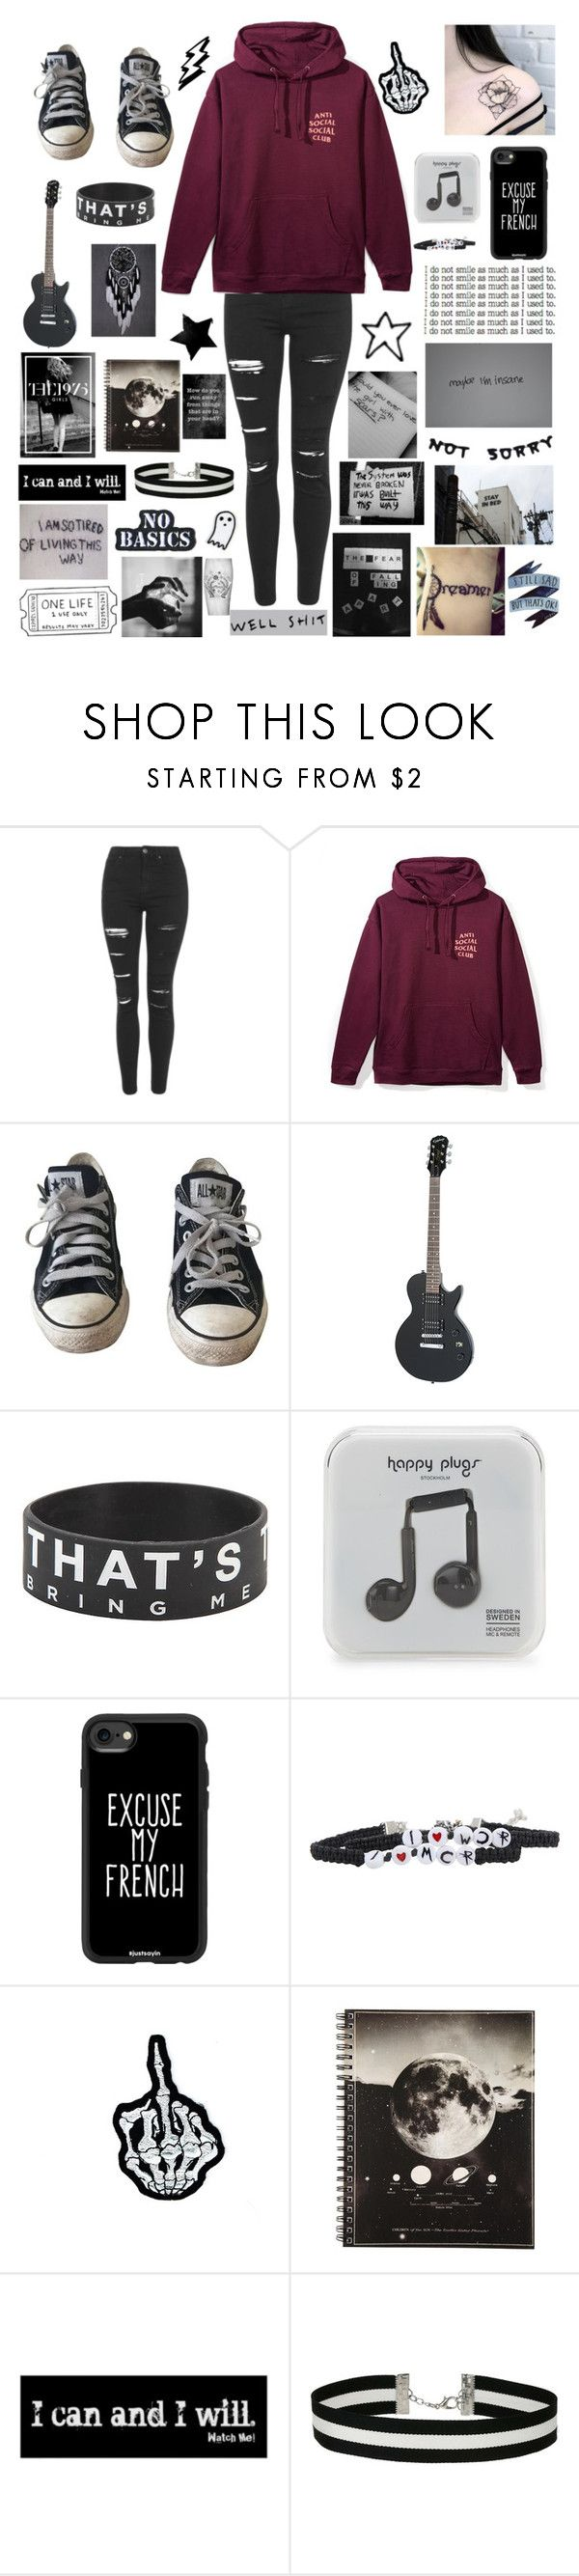 Jax in amazing outfits pinterest clothes fashion and